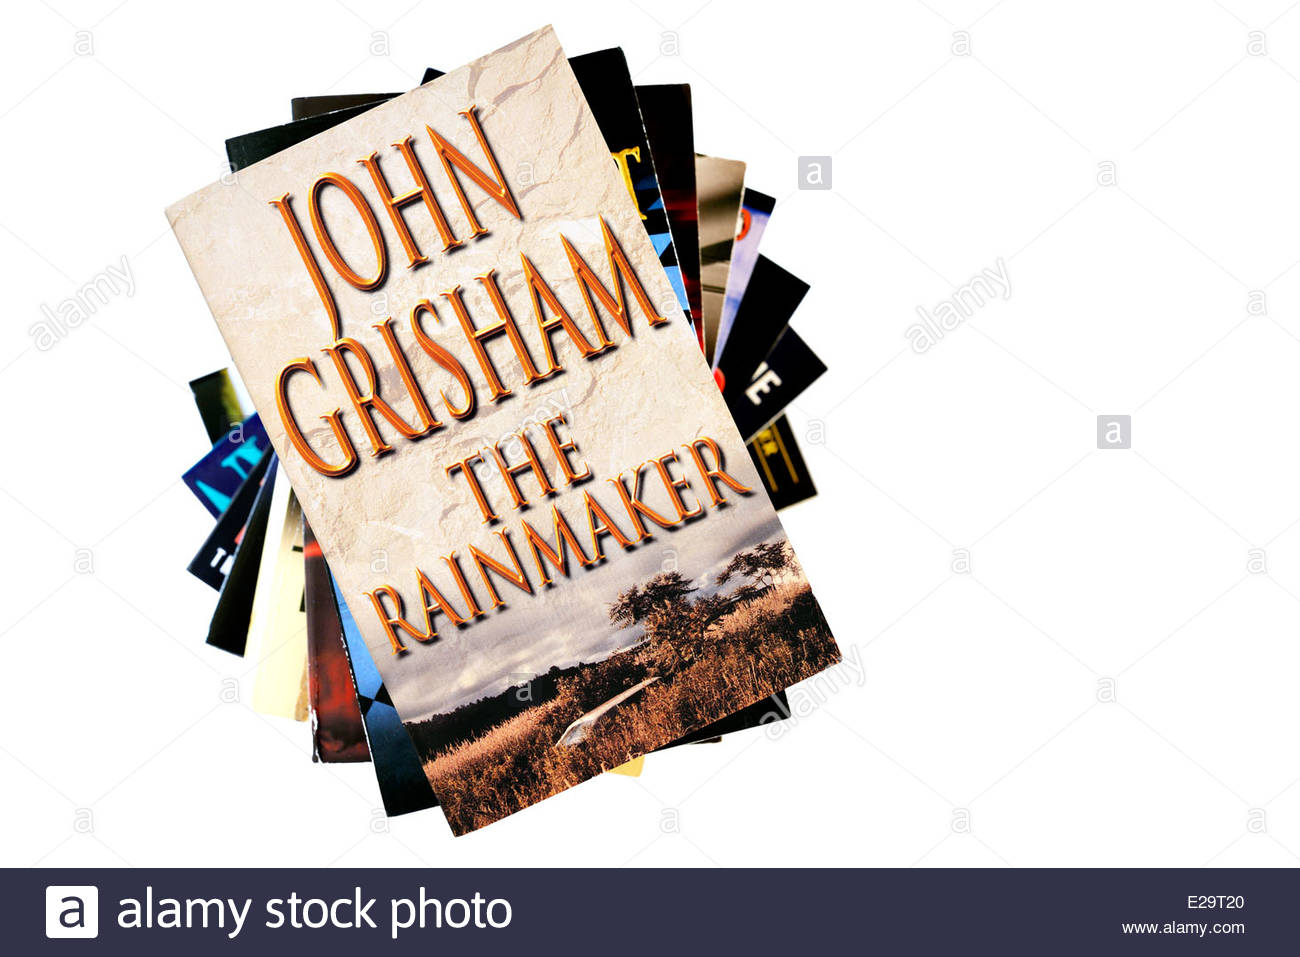 John Grisham book title The Rainmaker, stacked used books, England - Stock Image